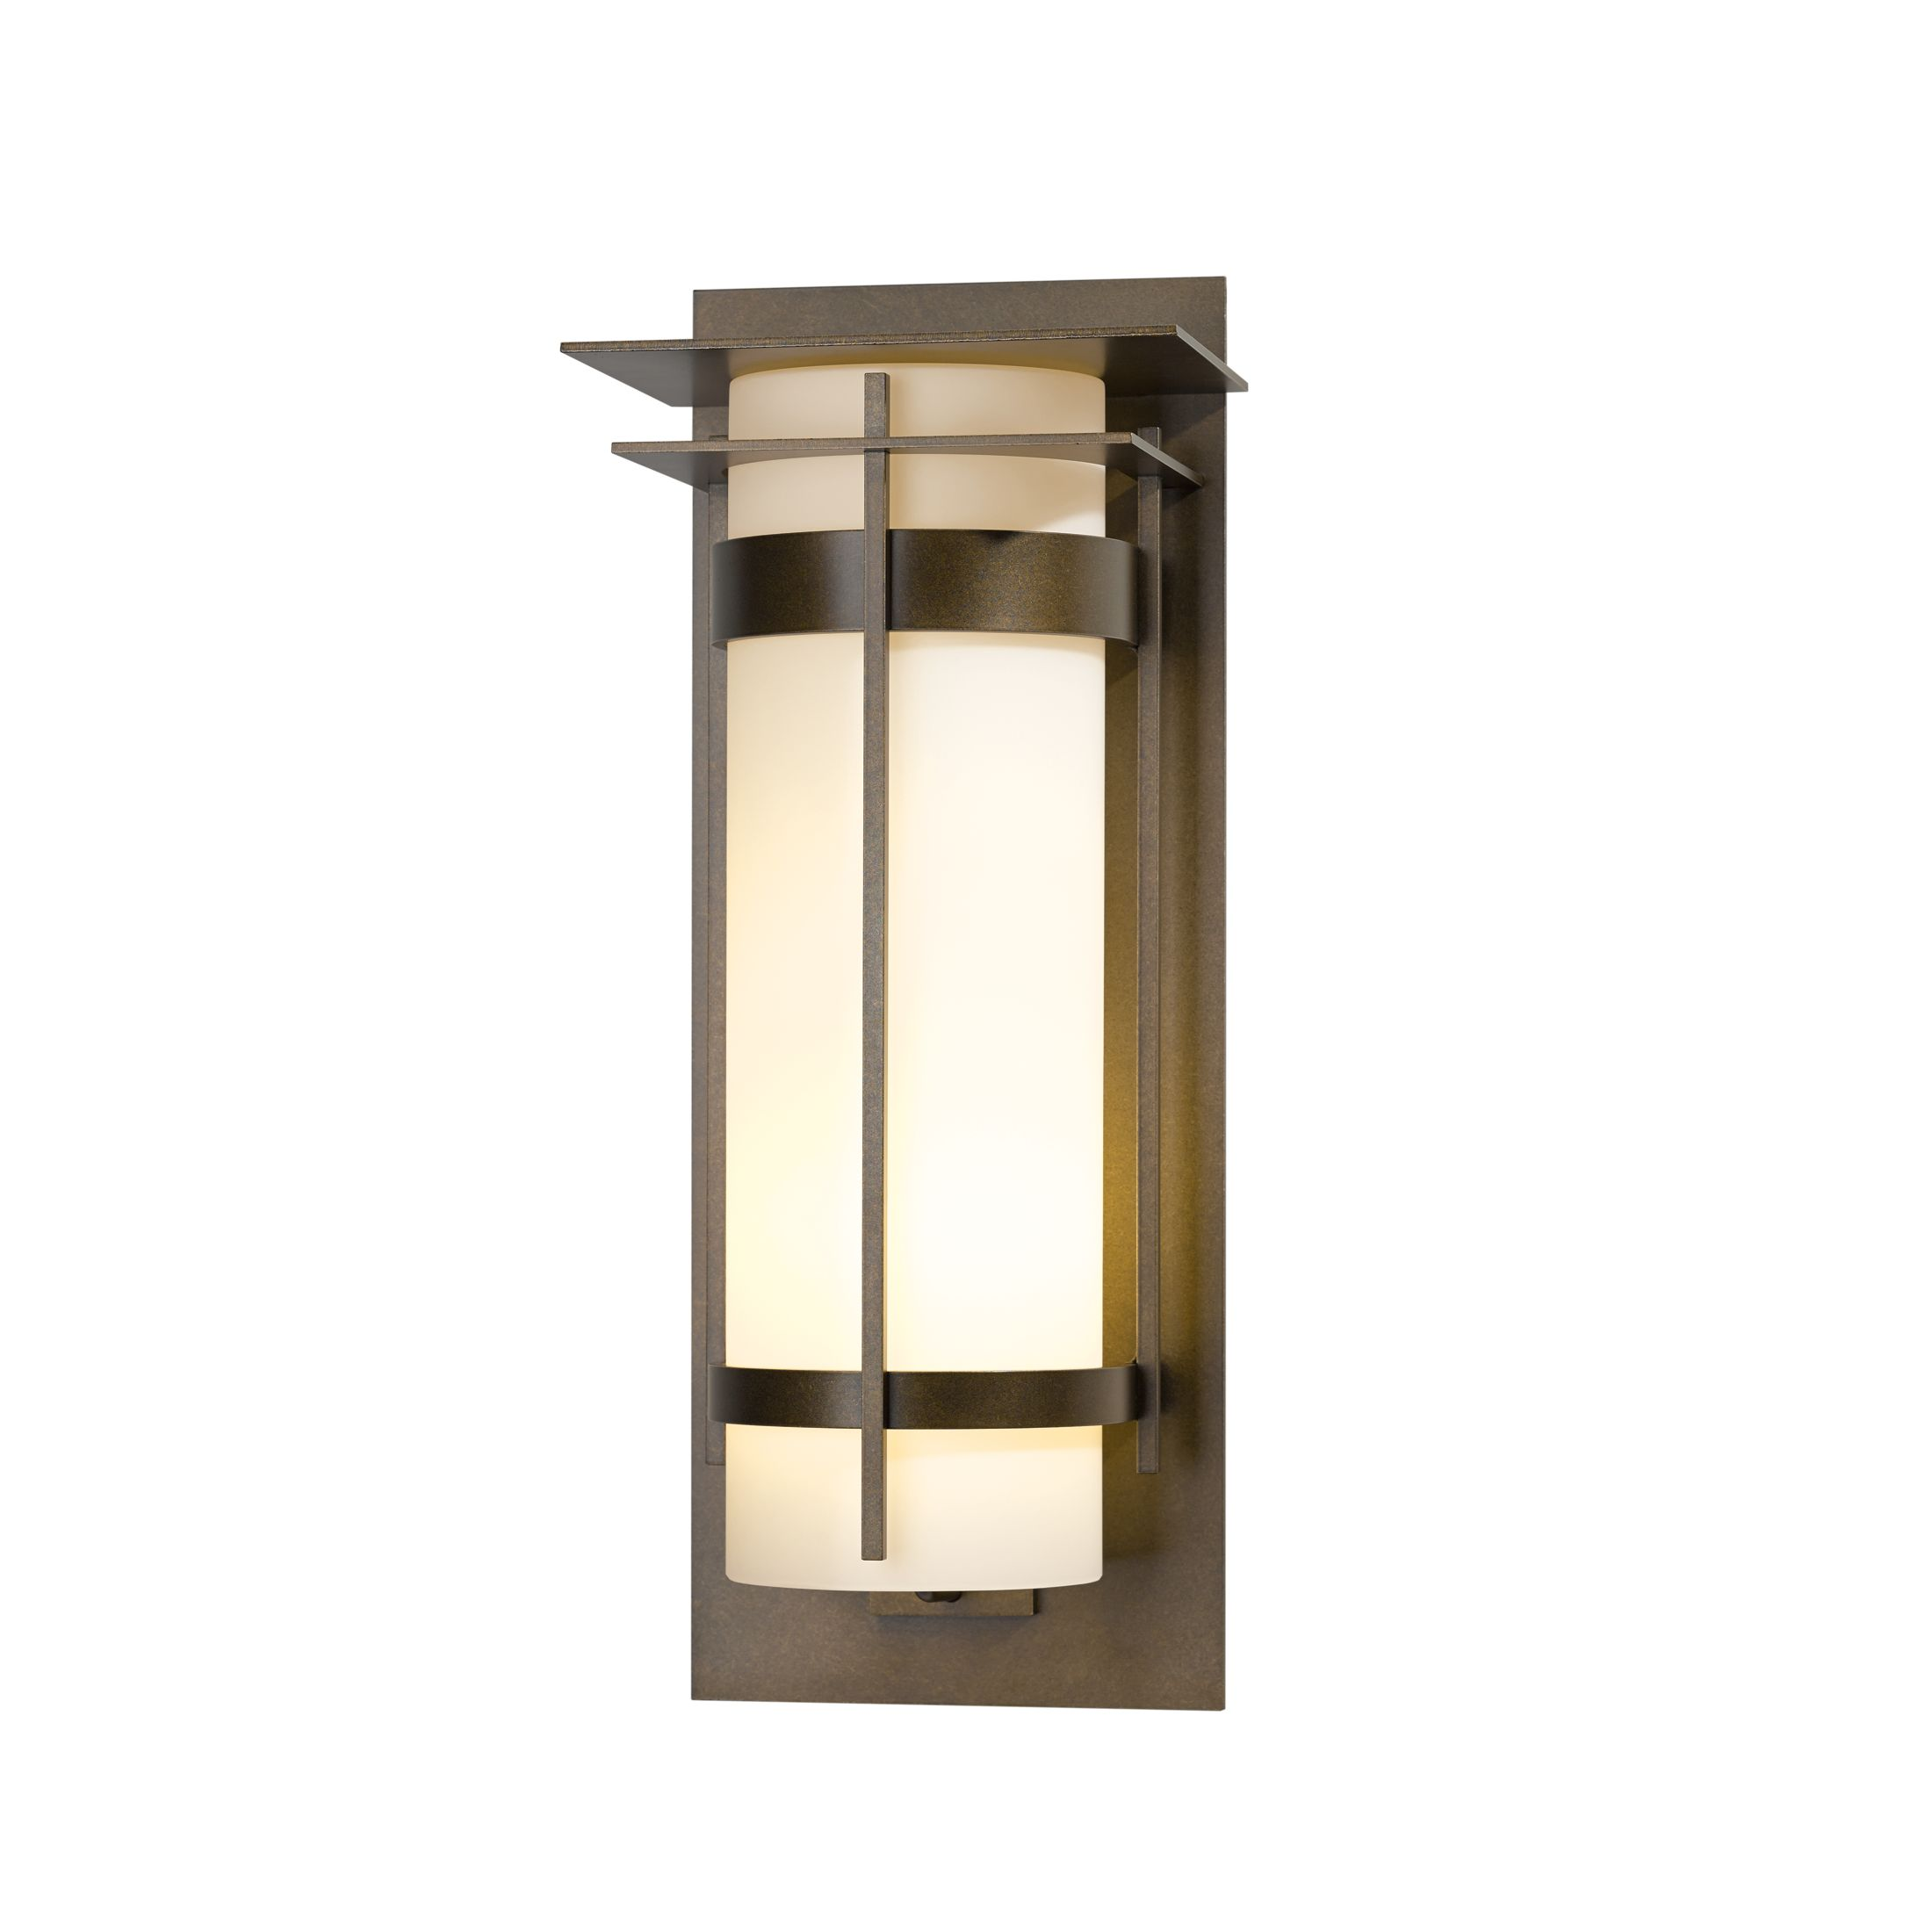 Product Detail: Banded with Top Plate Extra Large Interior Sconce